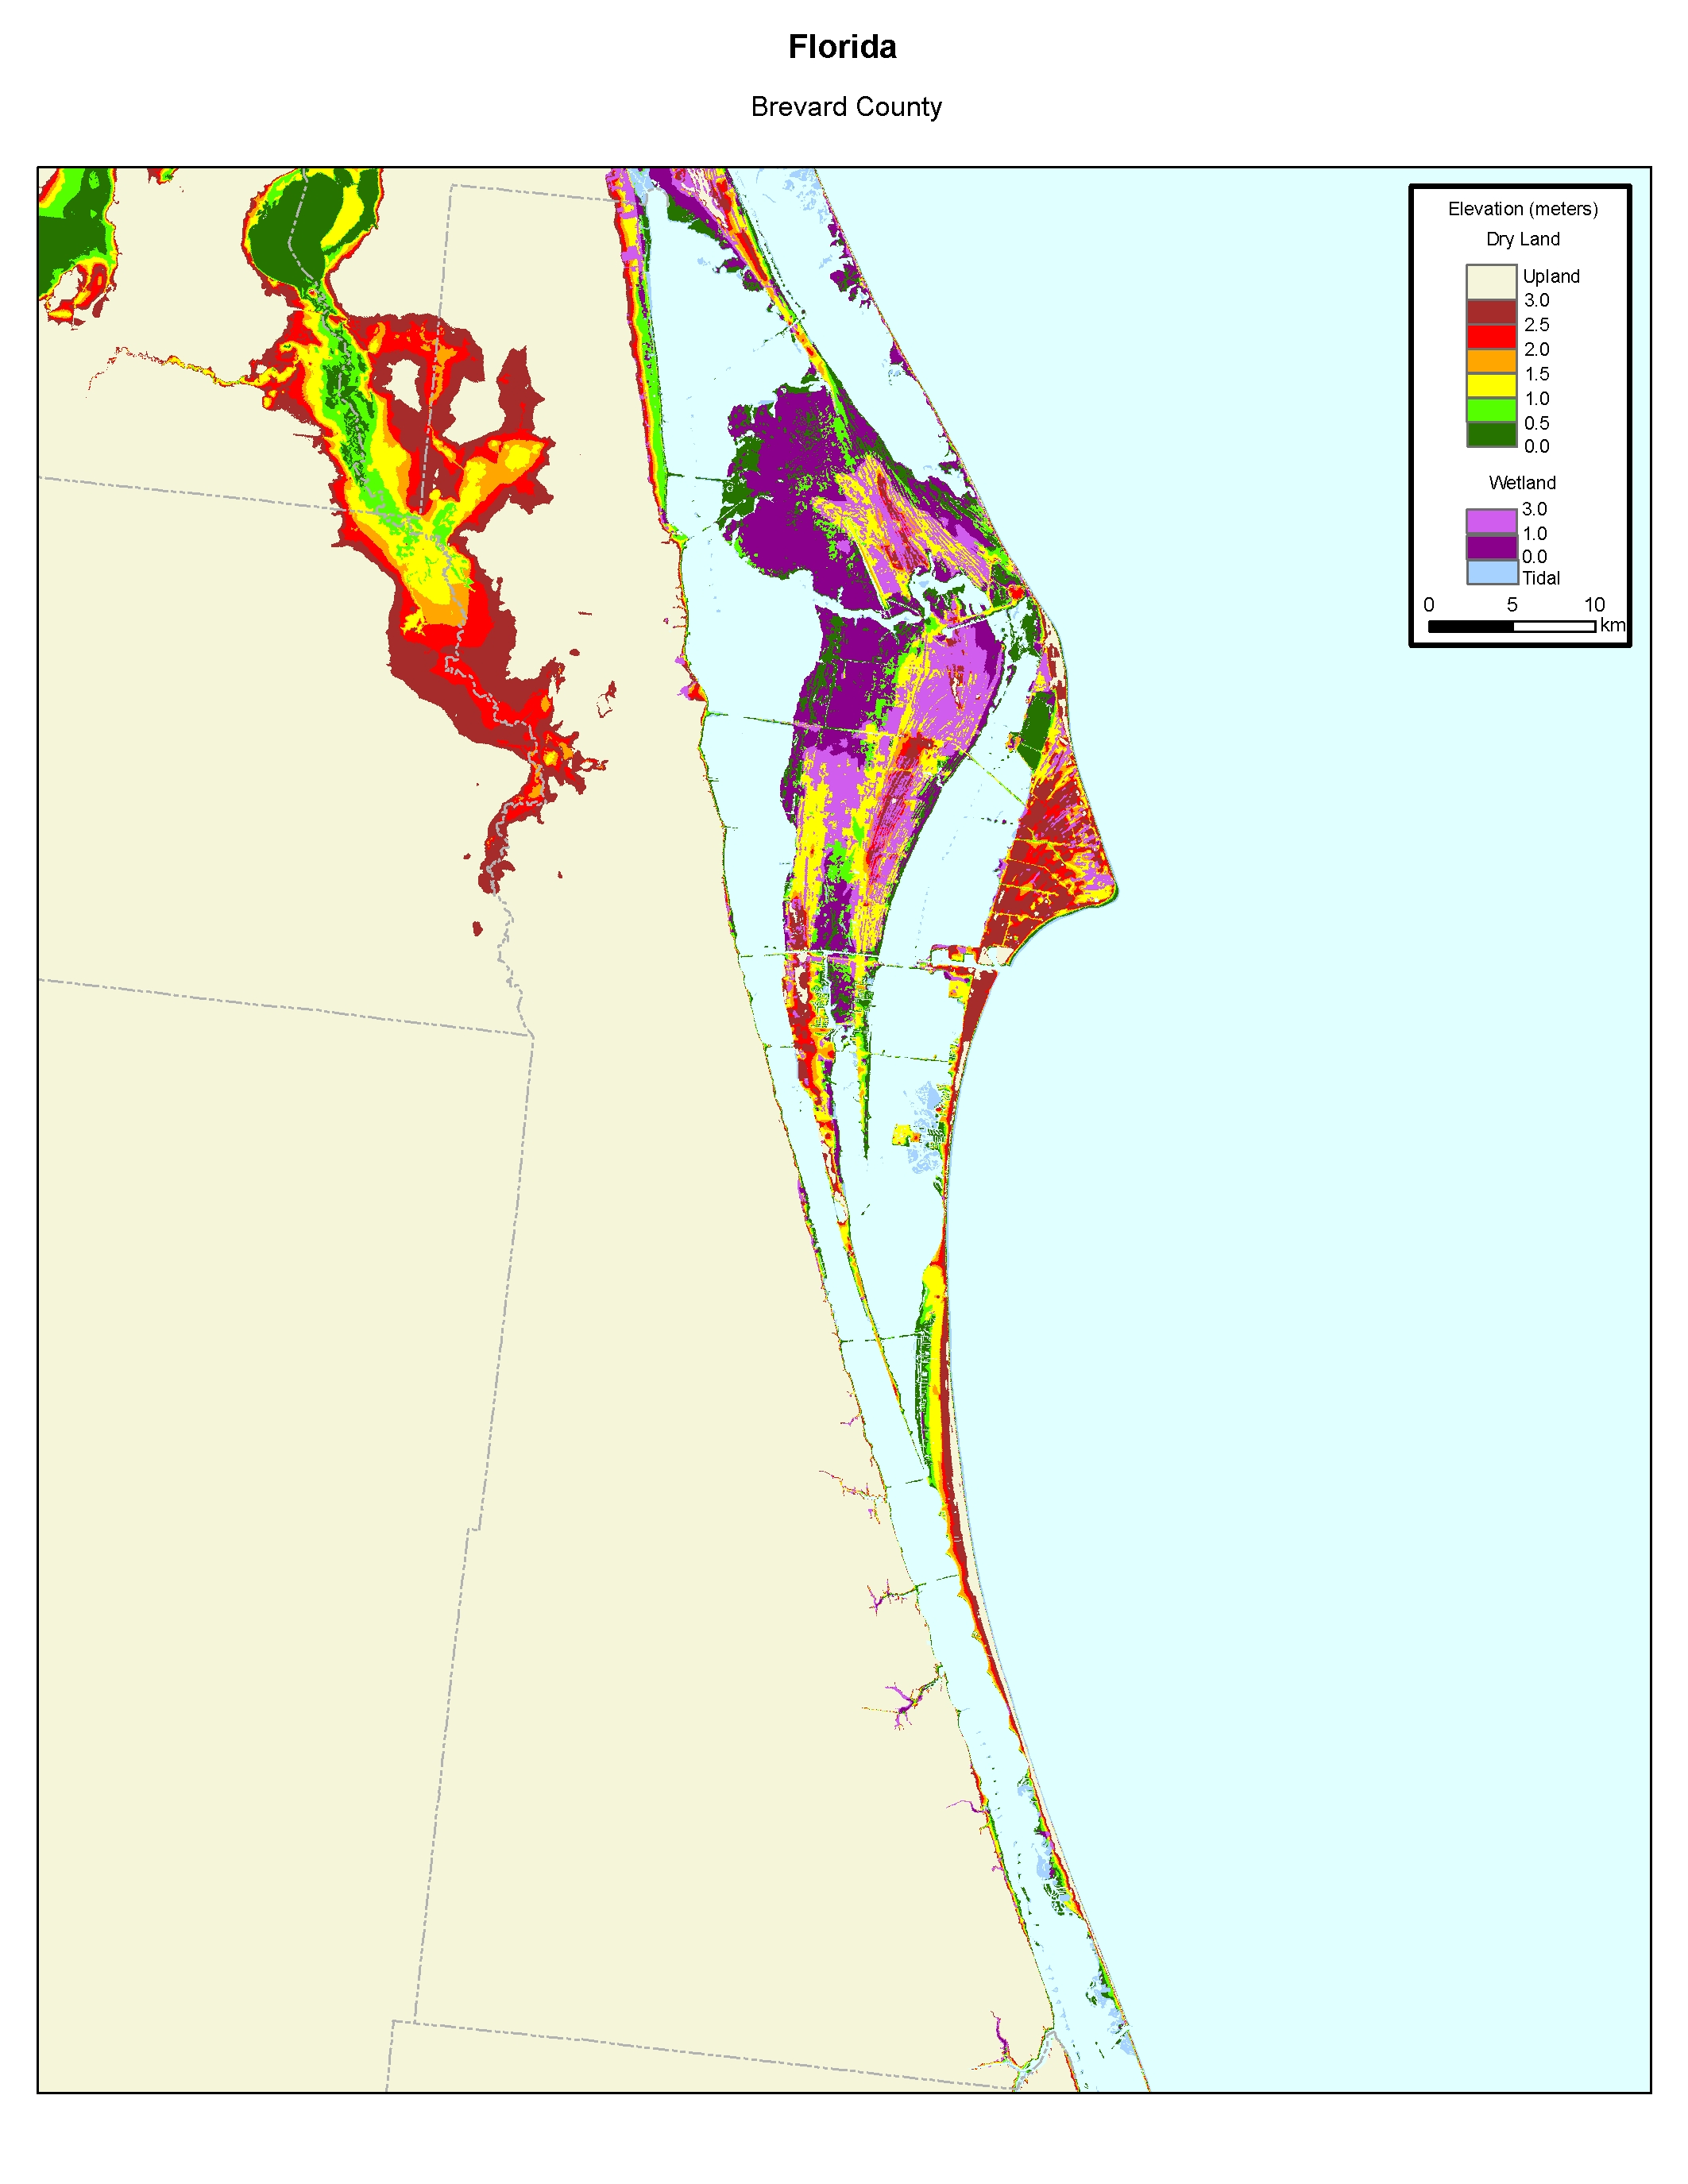 Florida Atlantic Coast Map.More Sea Level Rise Maps Of Florida S Atlantic Coast